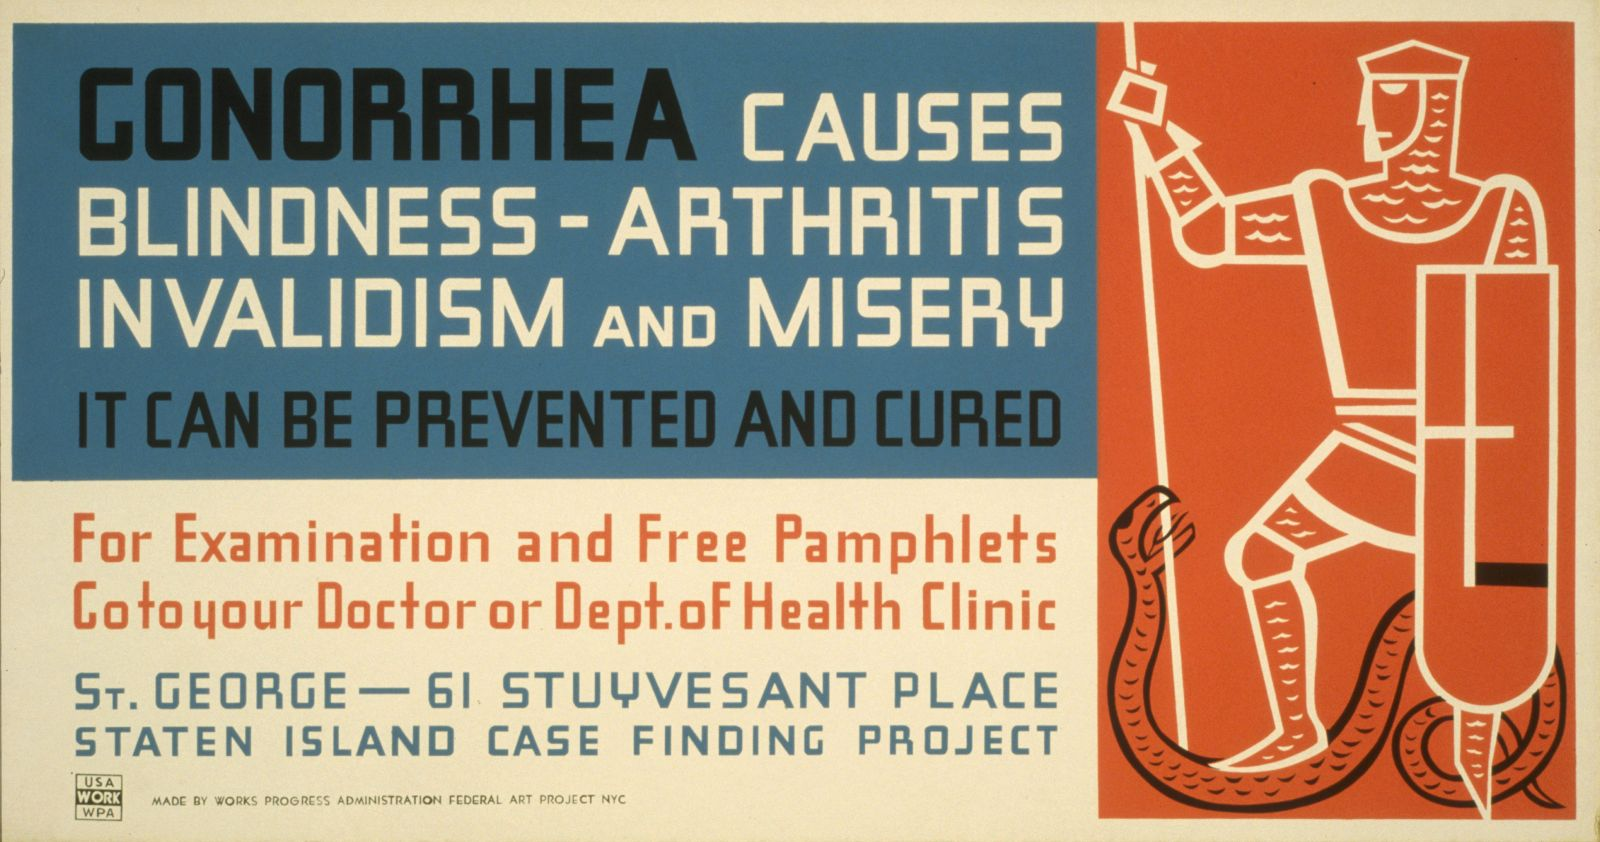 Gonorrhea causes blindness - arthritis, invalidism and misery